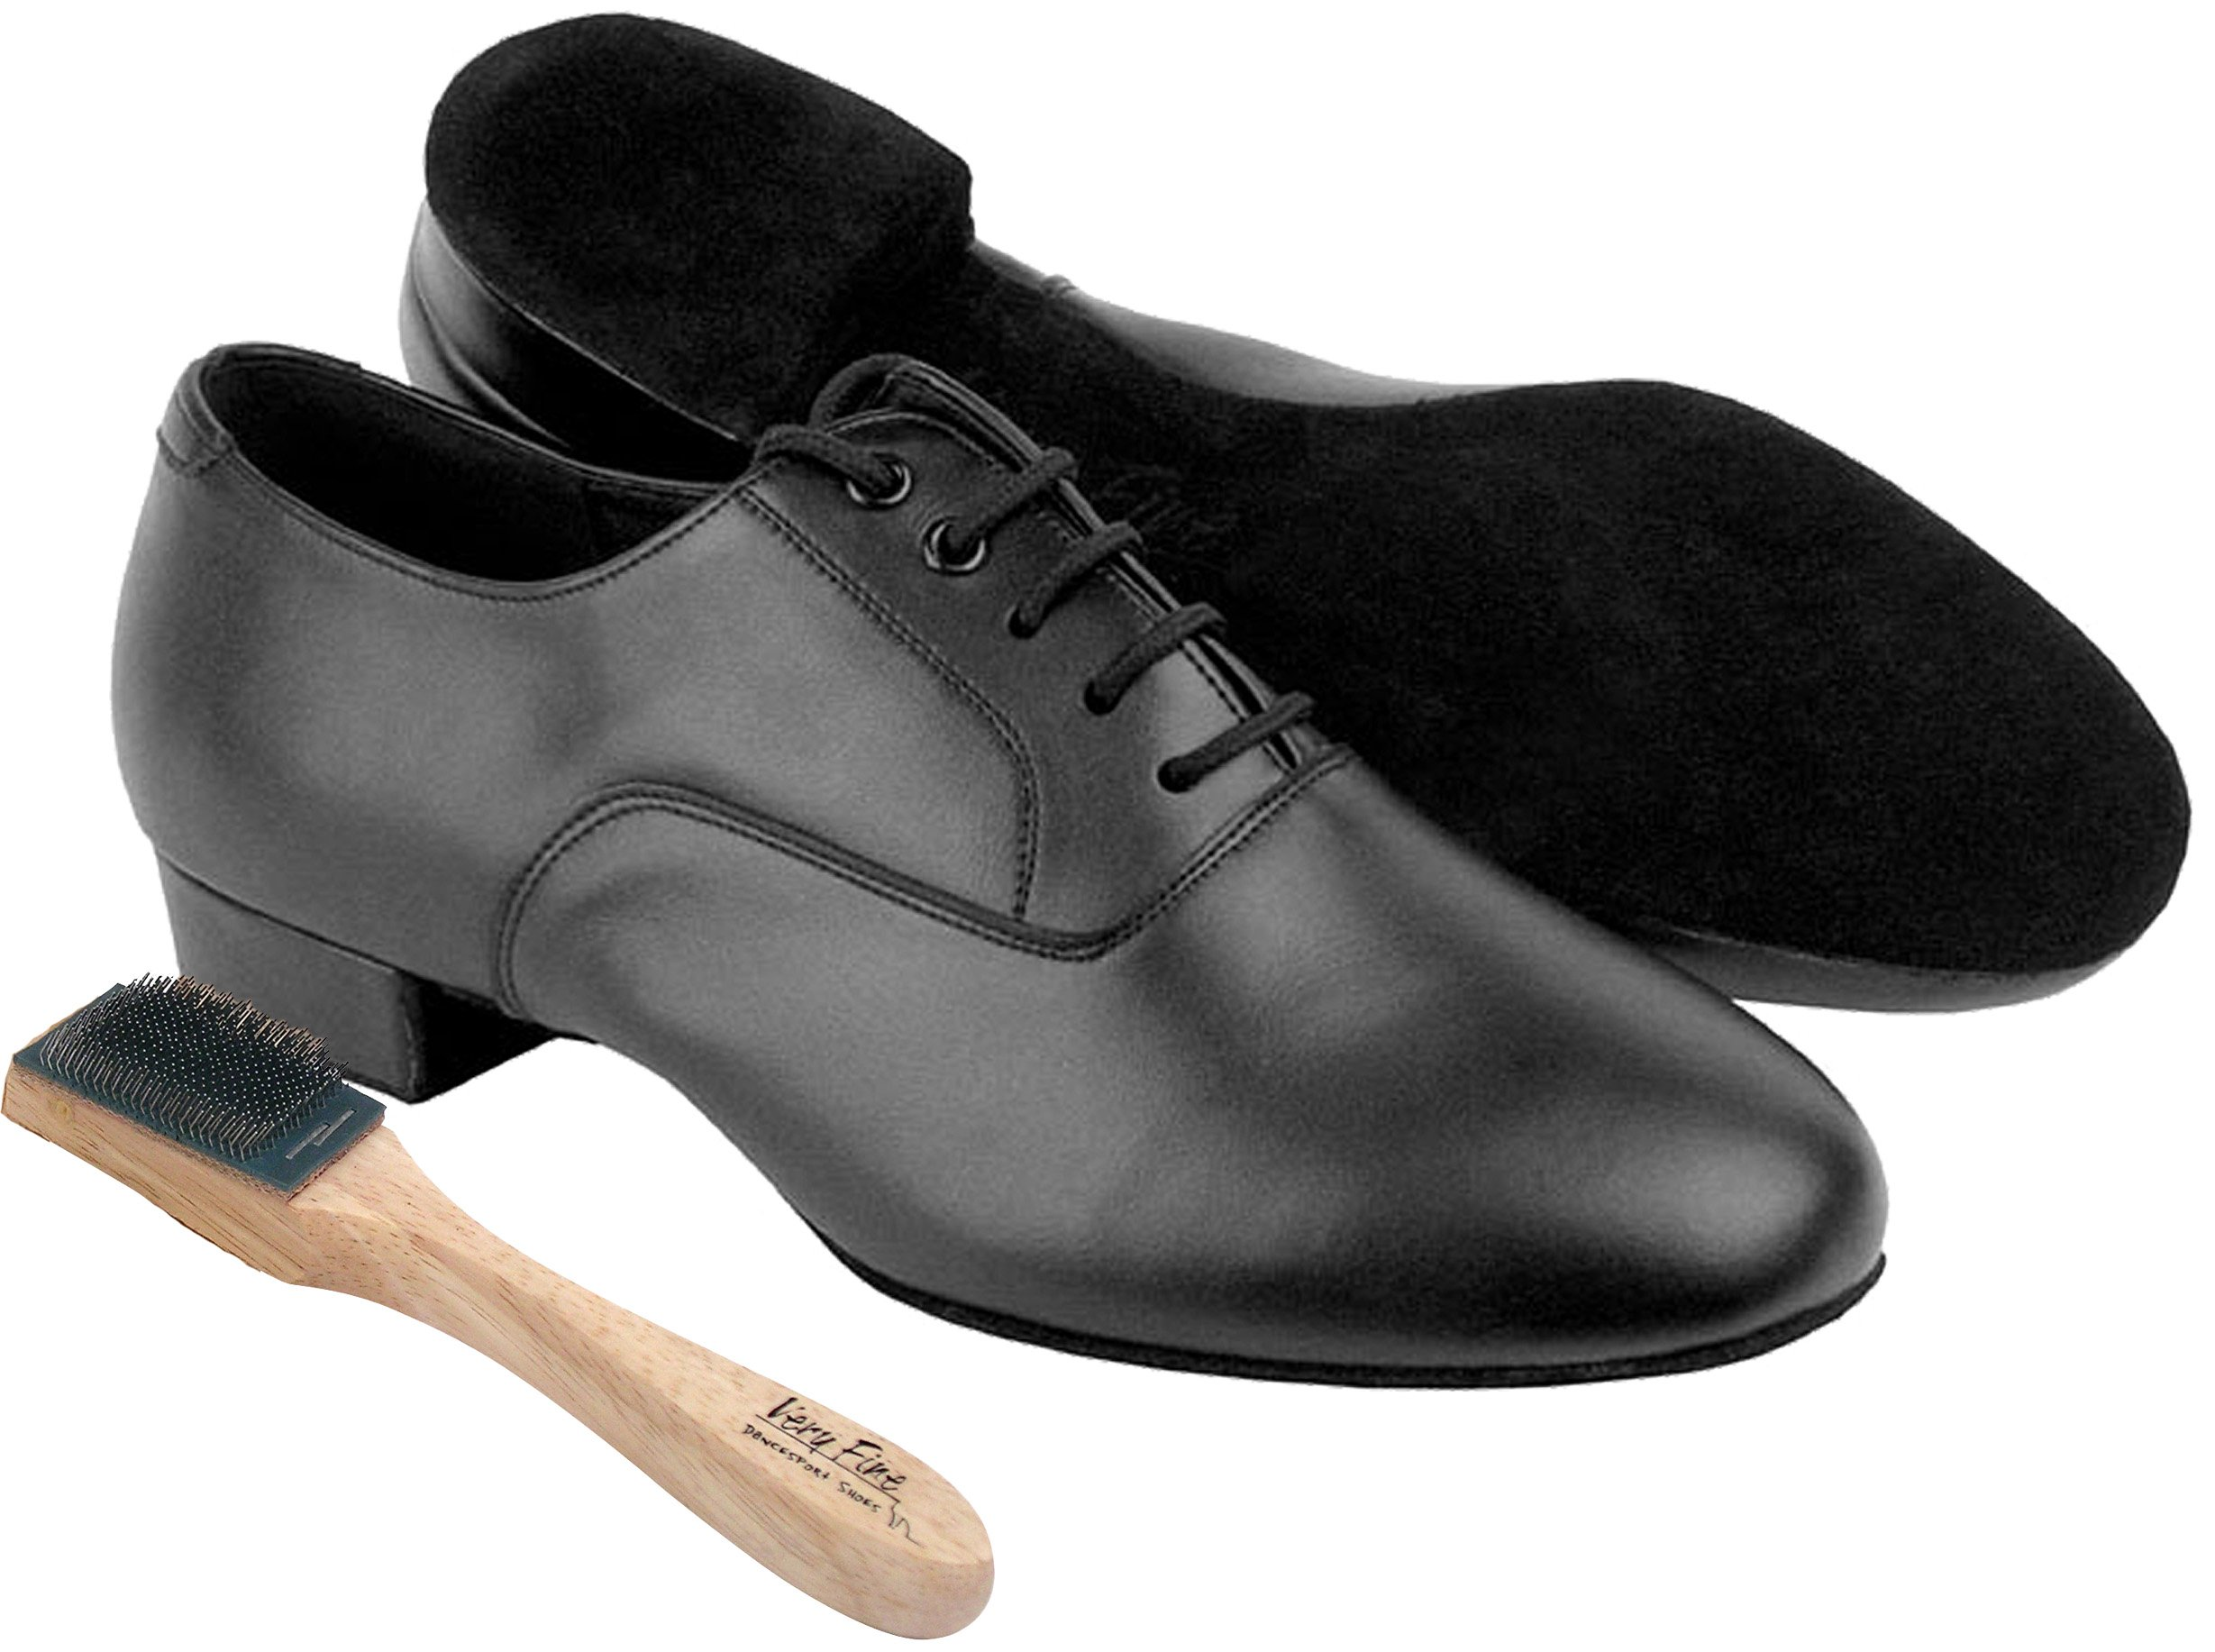 Very Fine Men's Salsa Ballroom Tango Latin Dance Shoes Style C919101W Bundle with Dance Shoe Wire Brush, Black Leather Wide Width 9 M US Heel 1 Inch by Very Fine Dance Shoes